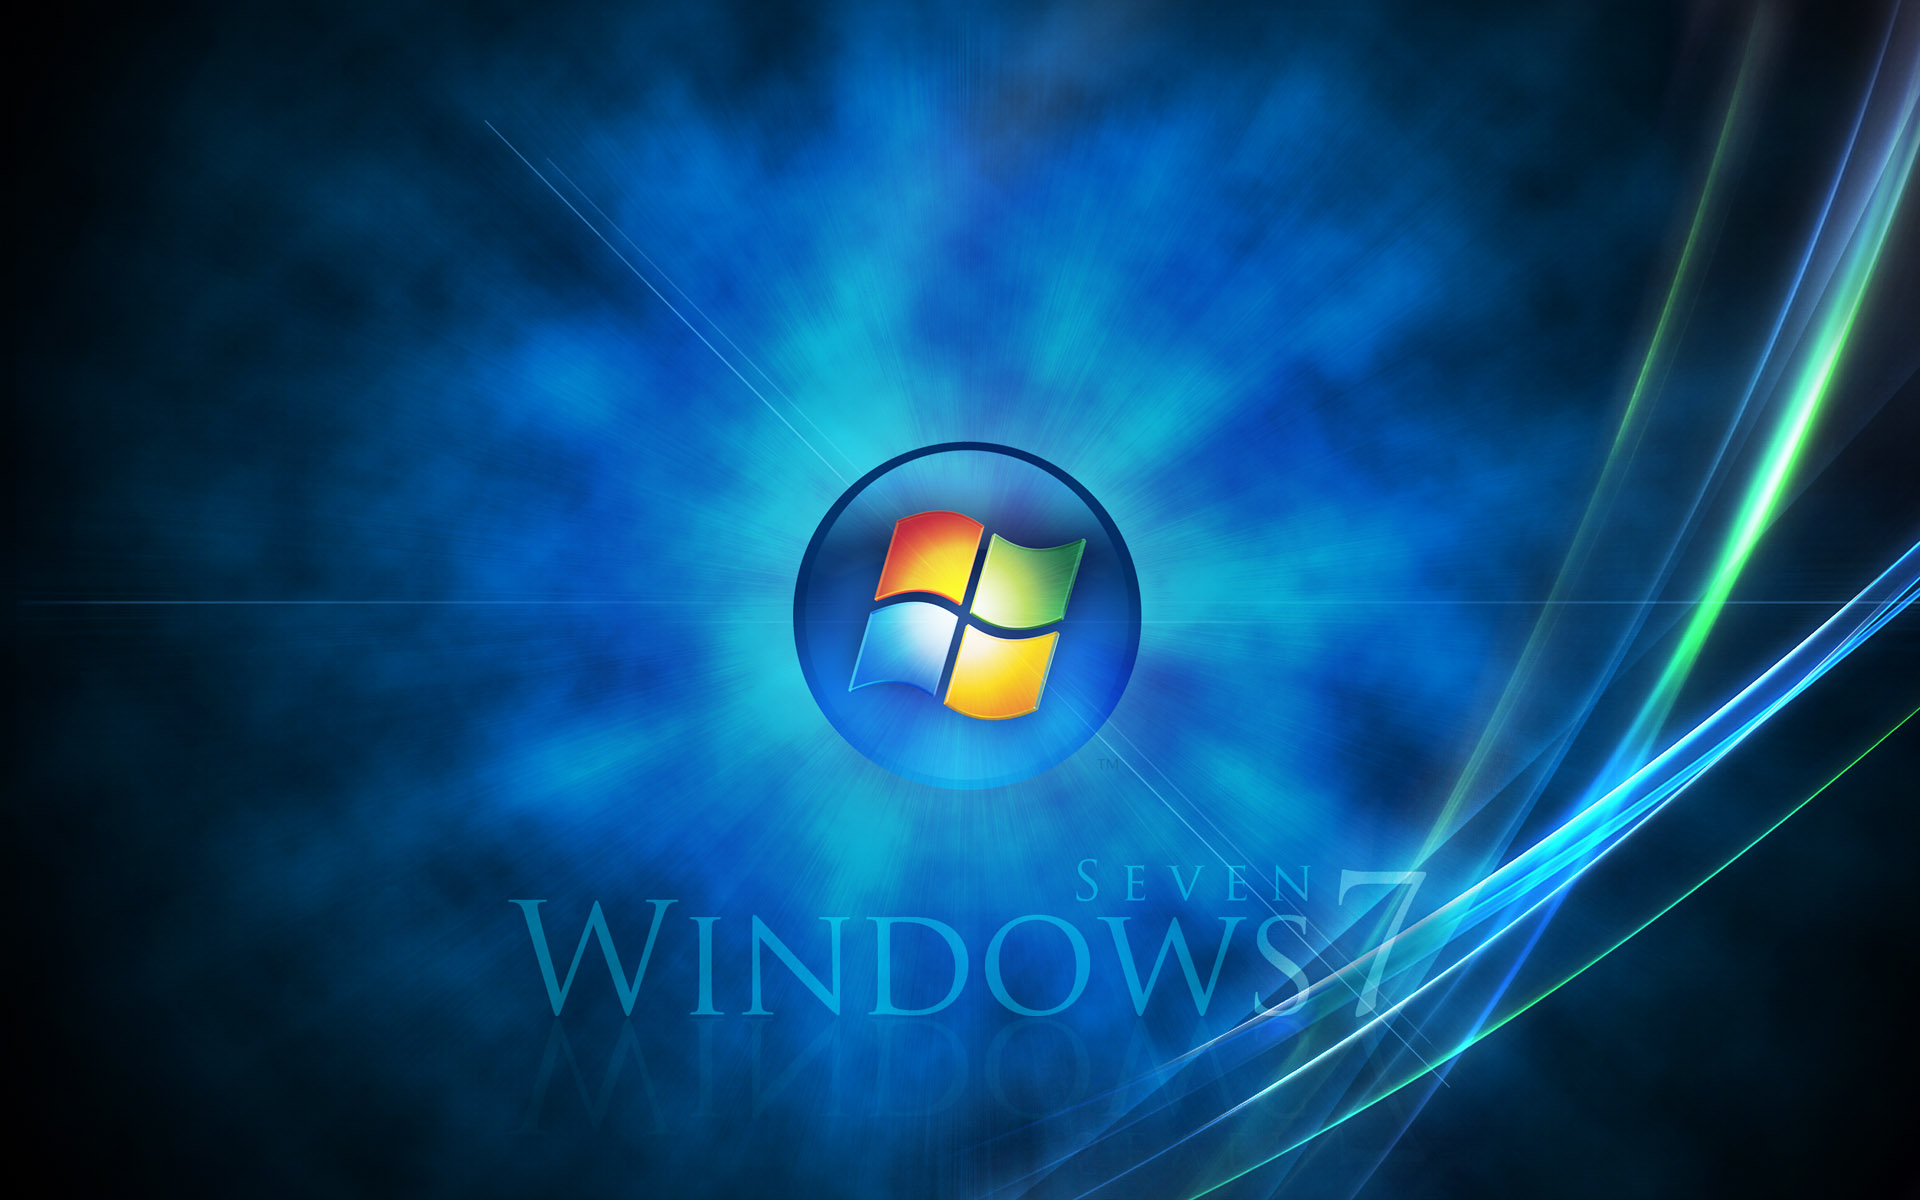 Wallpapers » Windows 7 Wallpapers